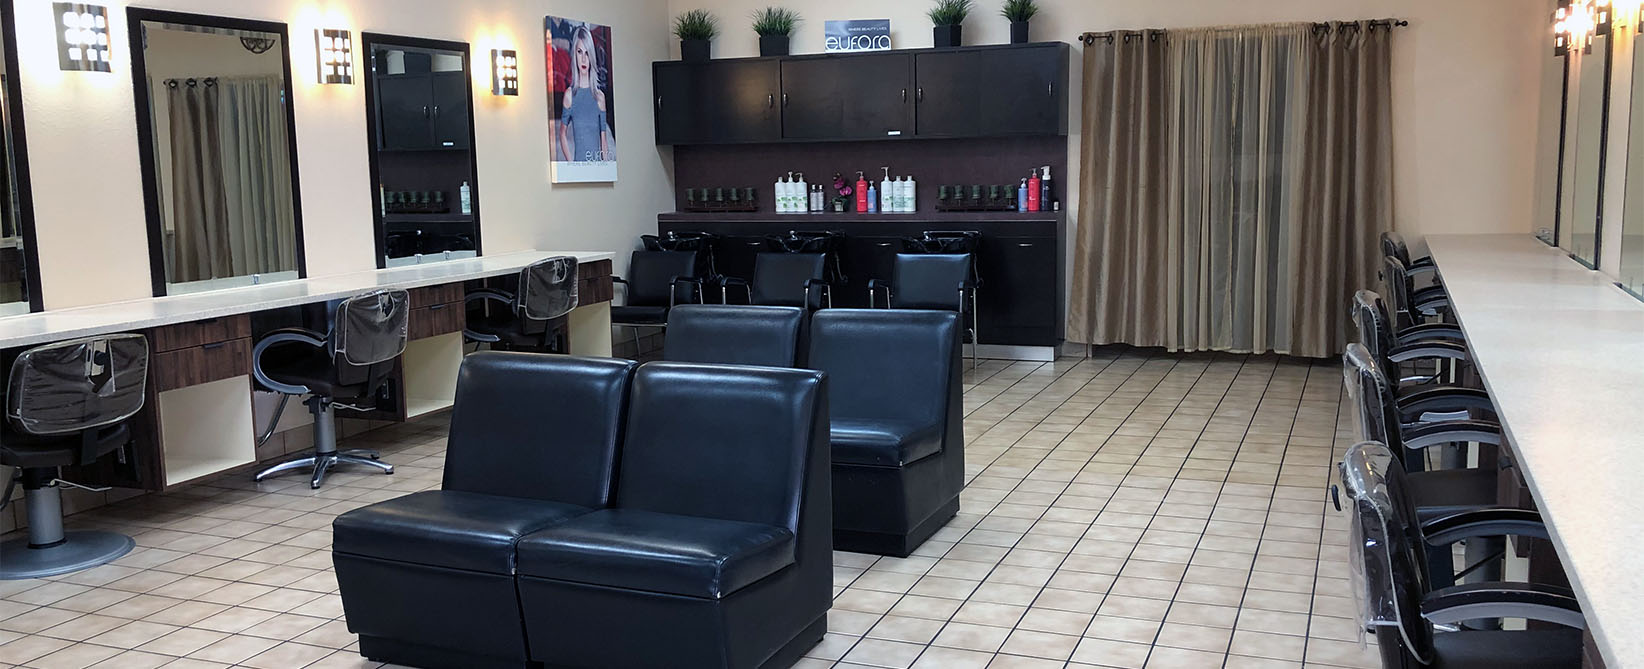 Home Palomar Institute Of Cosmetology